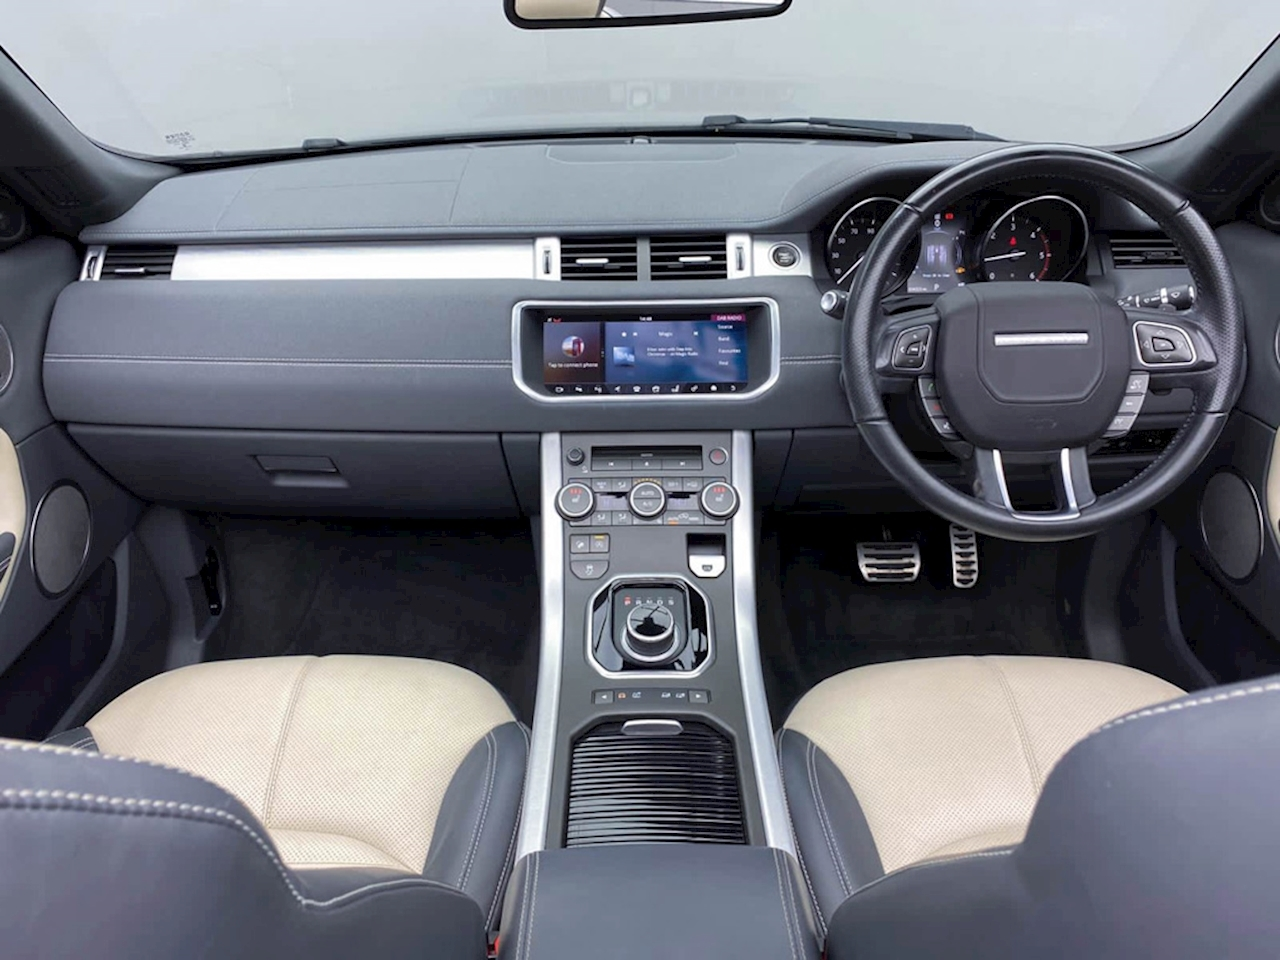 Land Rover 2.0 TD4 HSE Dynamic Lux Convertible 2dr Diesel Auto 4WD (s/s) (180 ps)